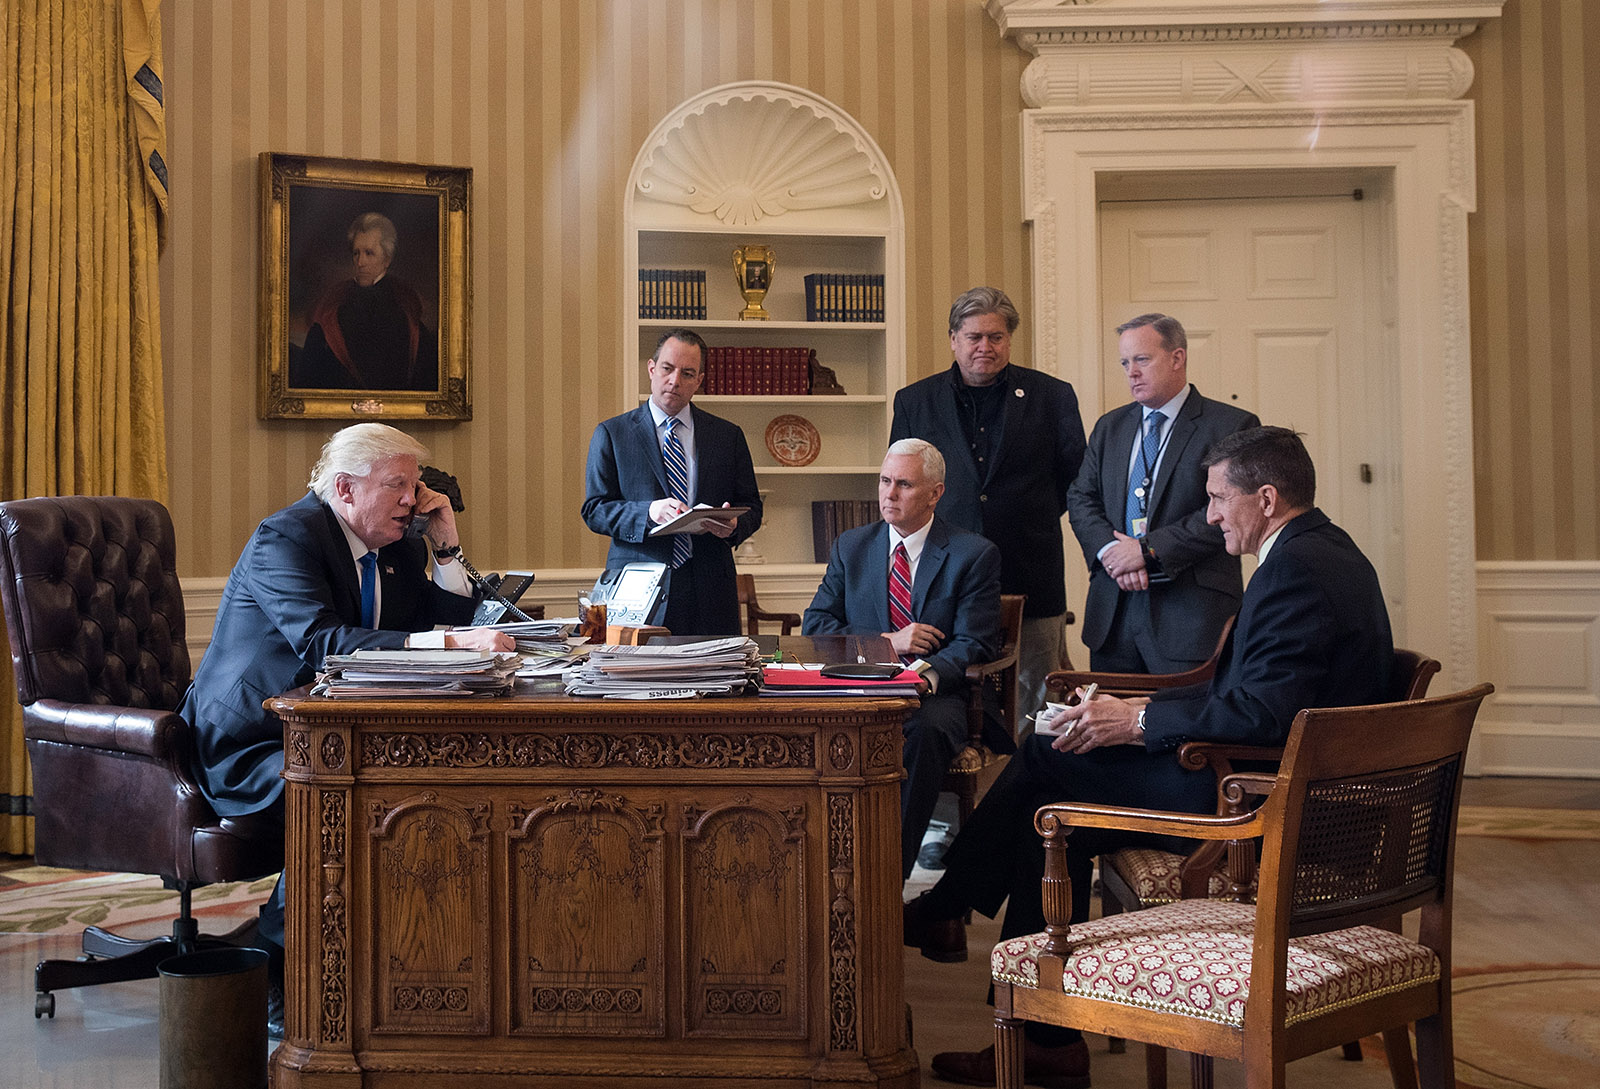 President Donald Trump speaking on the phone with Russian President Vladimir Putin, with Chief of Staff Reince Priebus, Vice President Mike Pence, White House Chief Strategist Steve Bannon, Press Secretary Sean Spicer, and National Security Adviser Michael Flynn in attendance in the Oval Office, January 28, 2017